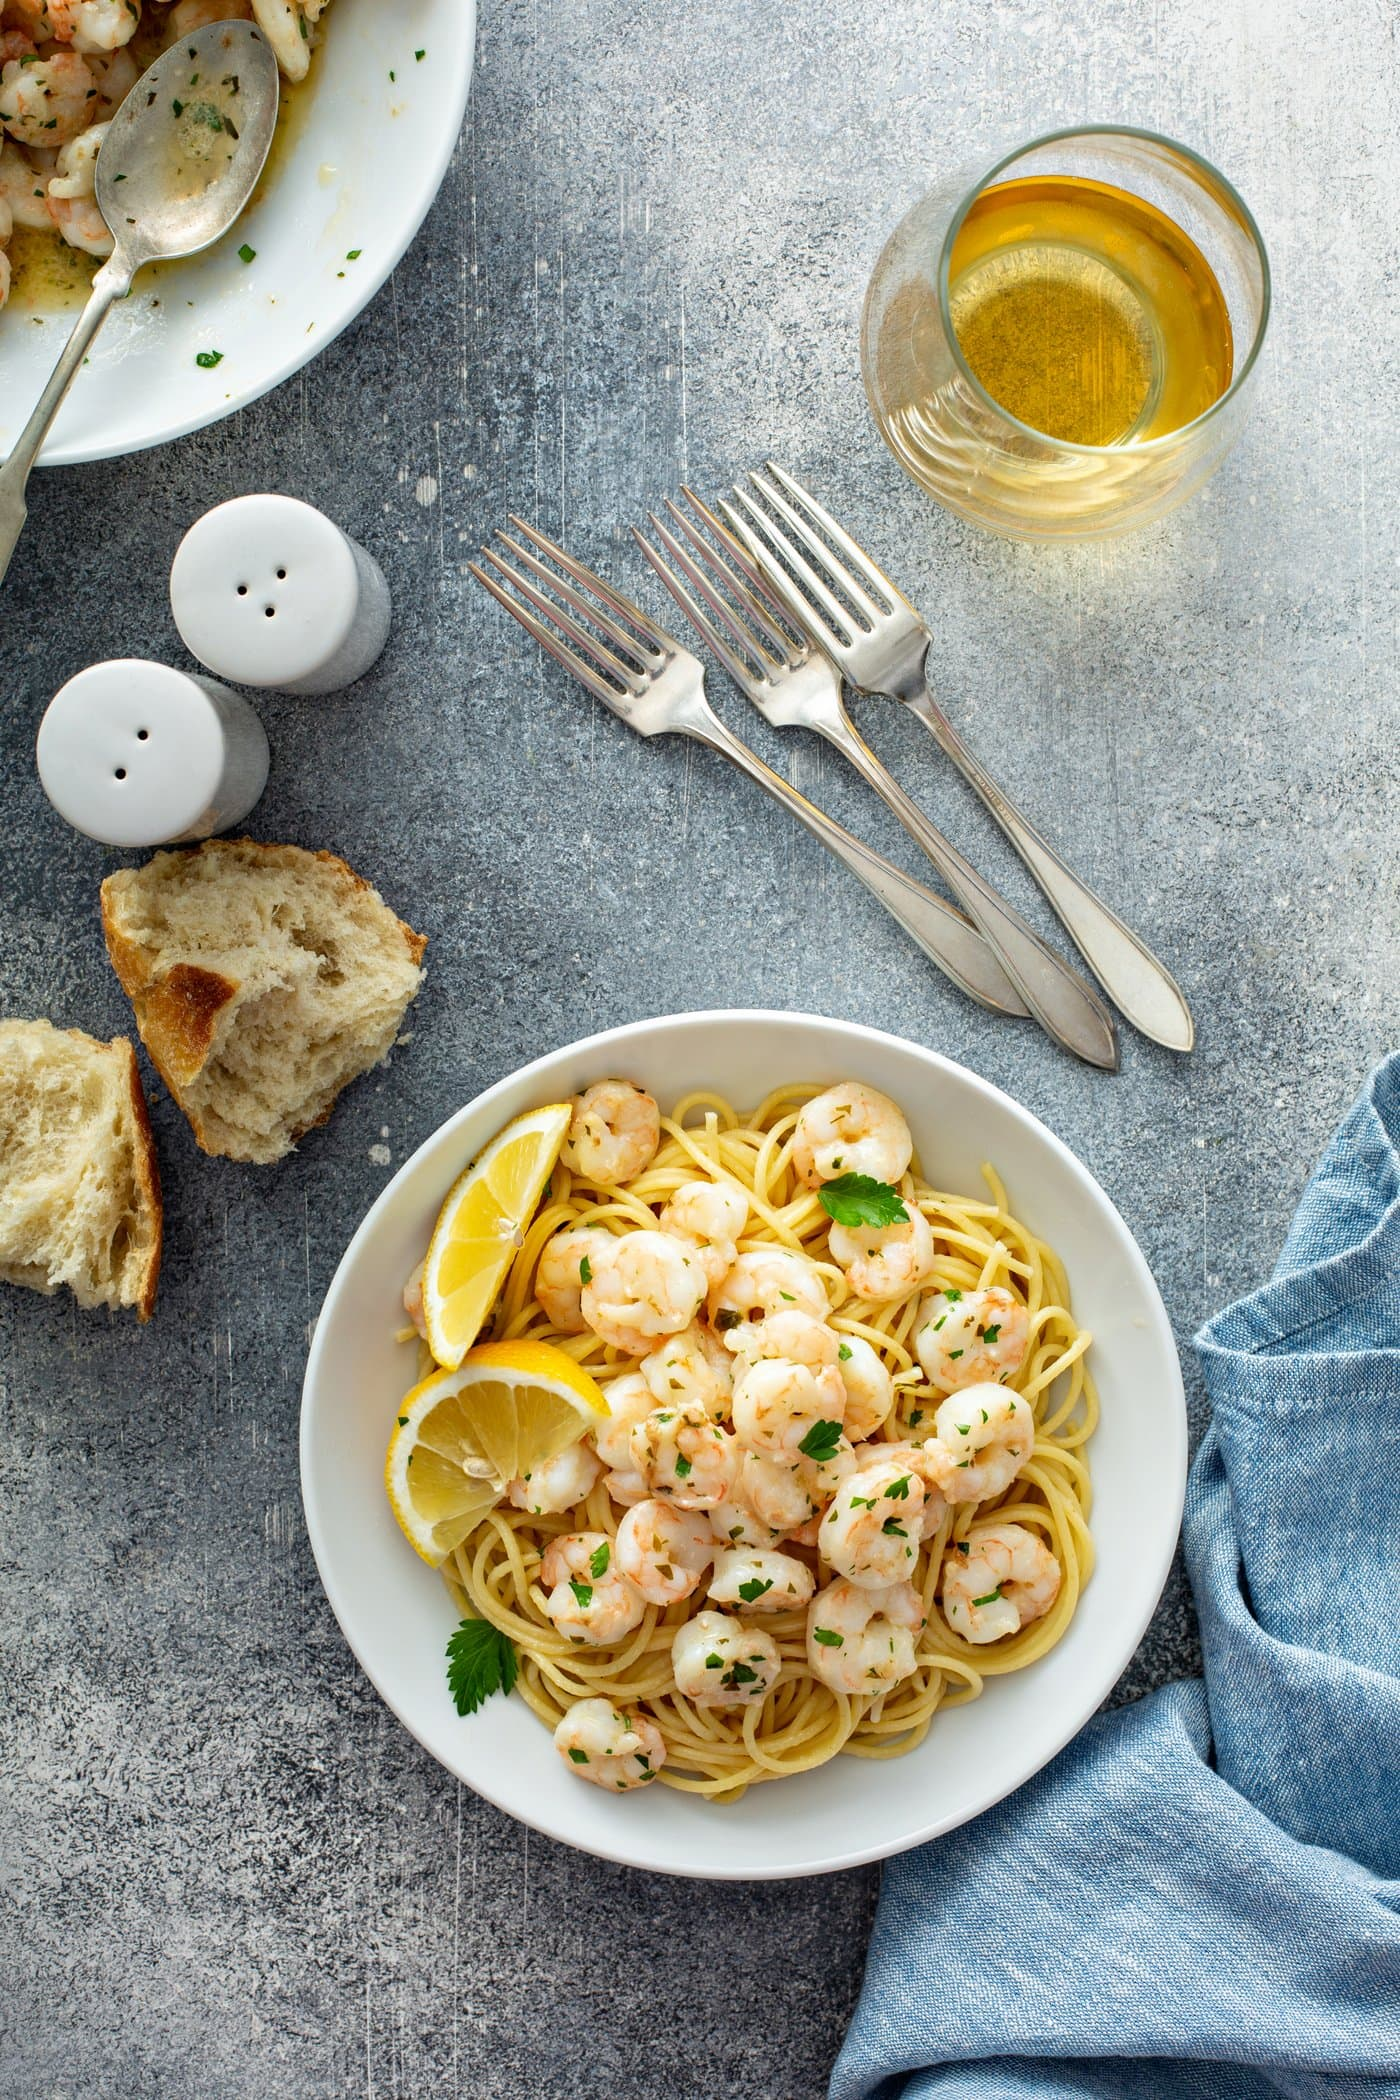 A serving dish of lemon garlic shrimp over pasta. There are lemon wedges on the edge of the plate and the shrimp are sprinkled with fresh parsley. There is a container of oil, three forks, salt and pepper shakers, and two pieces of hard bread in the background.